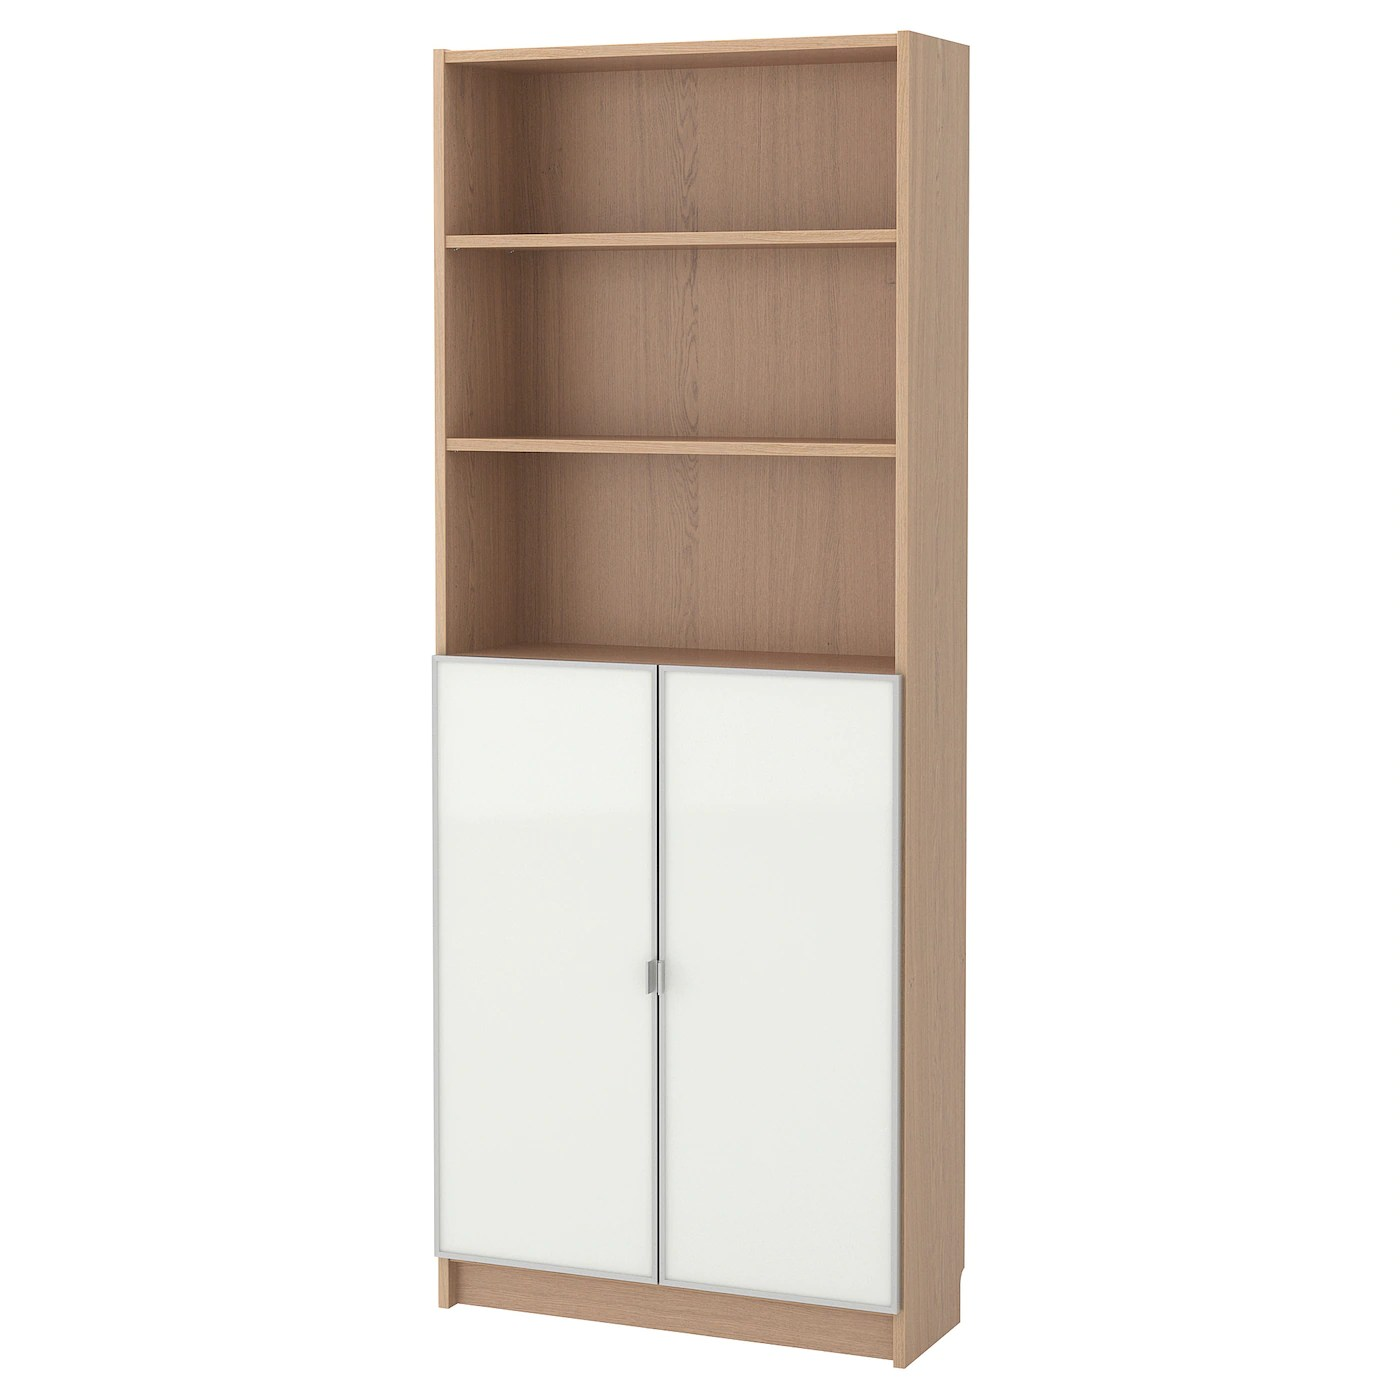 Side By Side 80 Cm Breit Billy Ikea